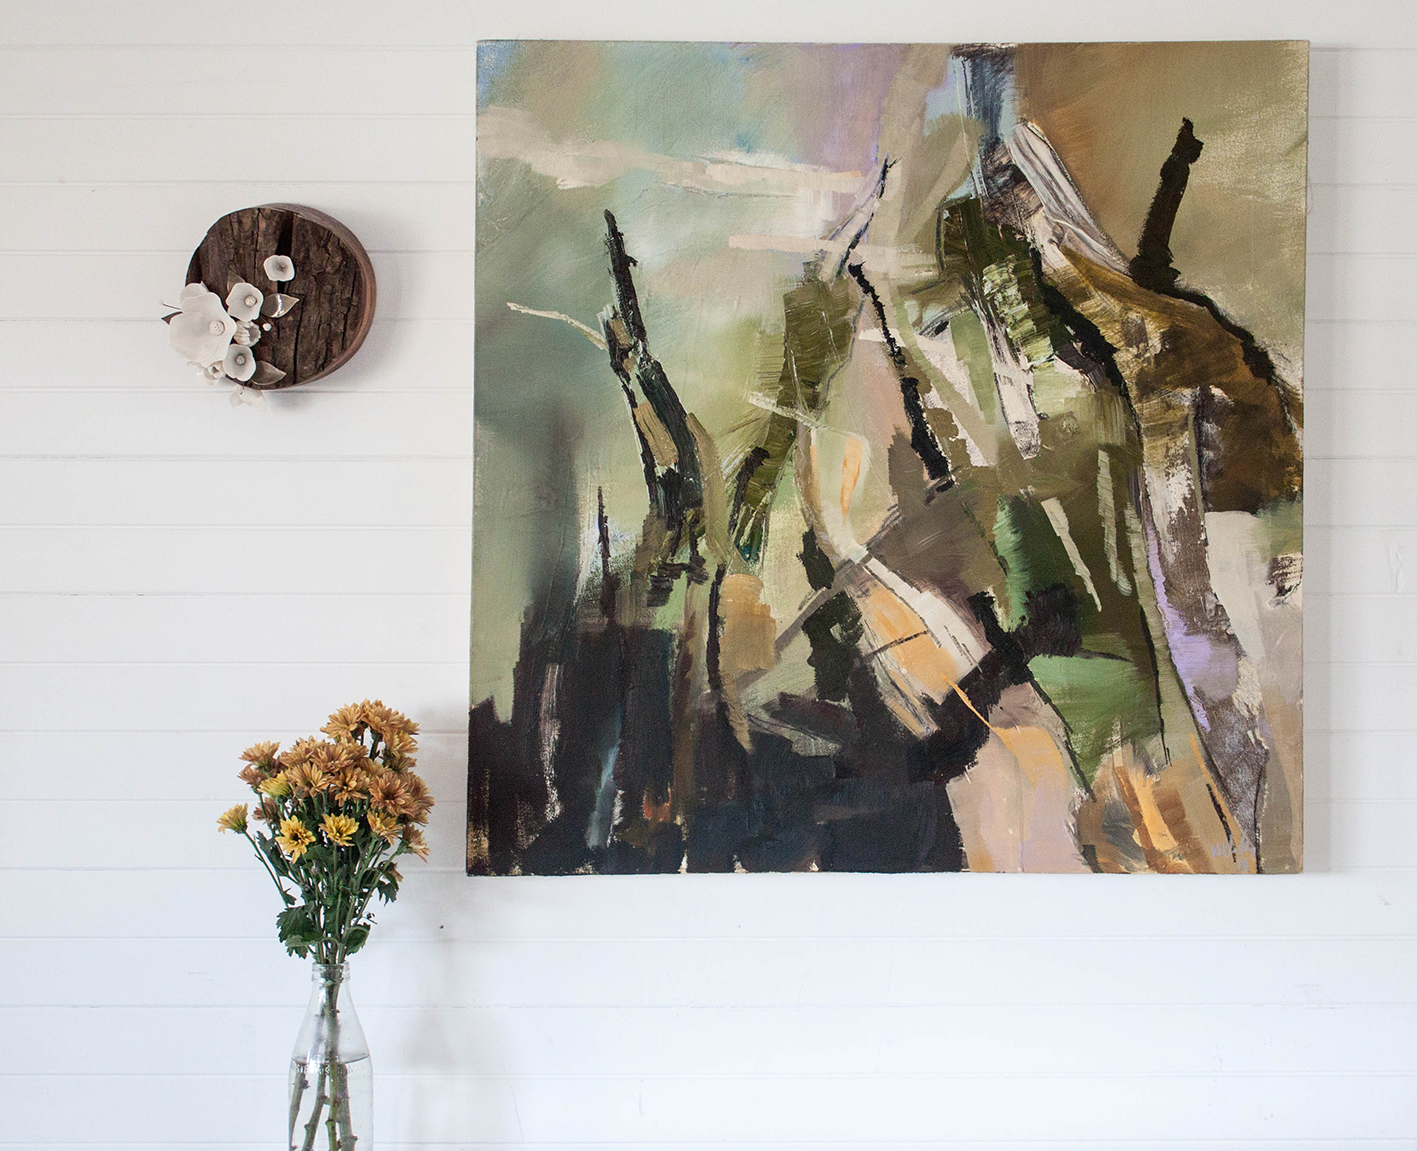 Painting by  Nicole Chaffey , ceramic art by  Amy Hick